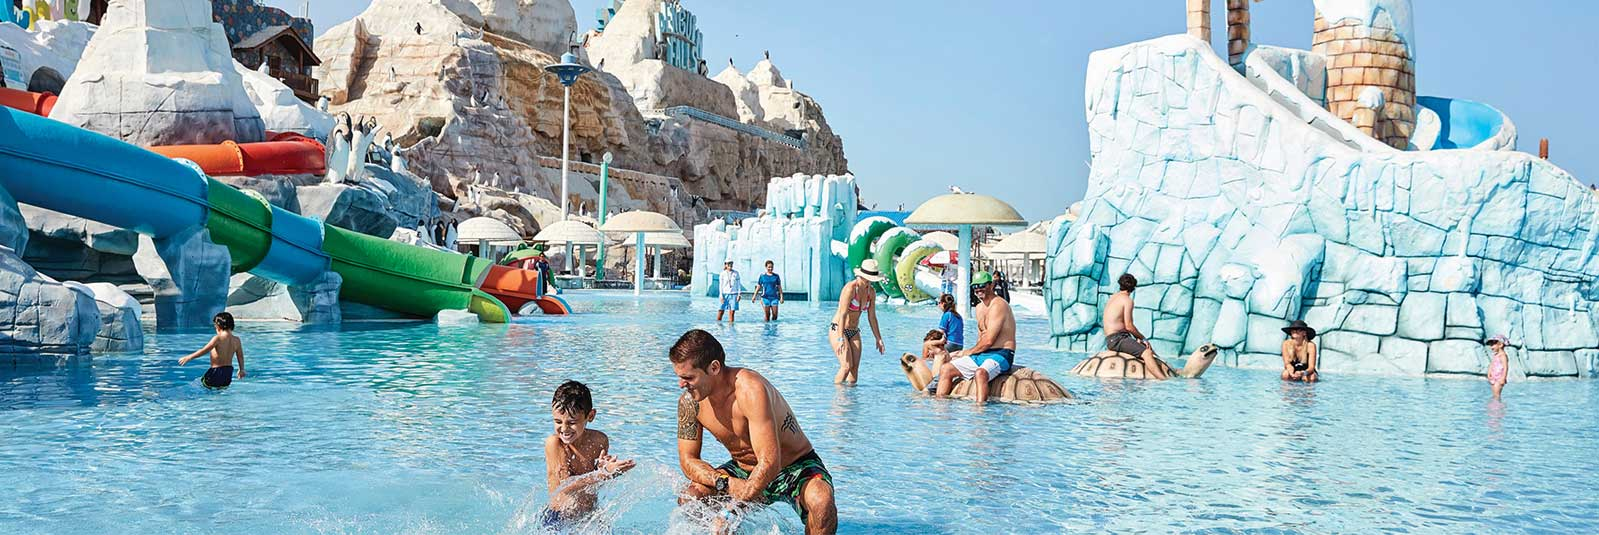 iceland-waterpark-dubai